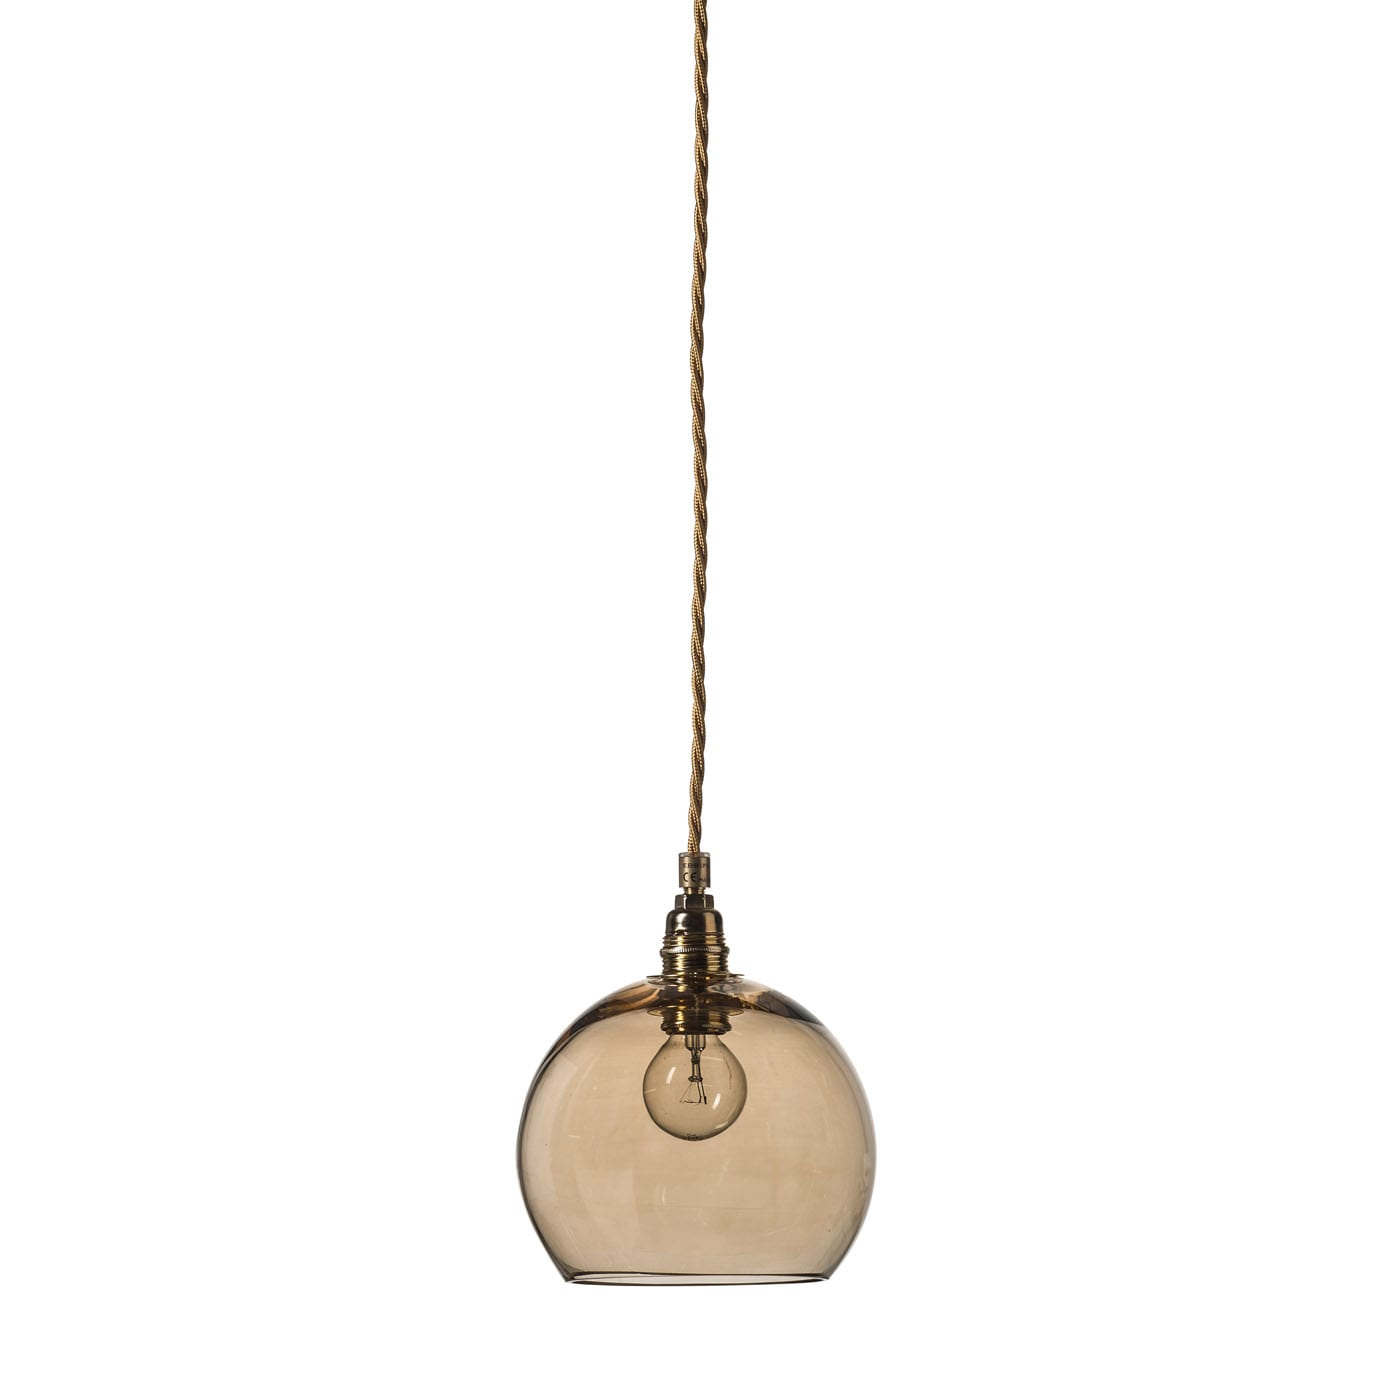 Rowan pendant lamp, chestnut brown, 15cm